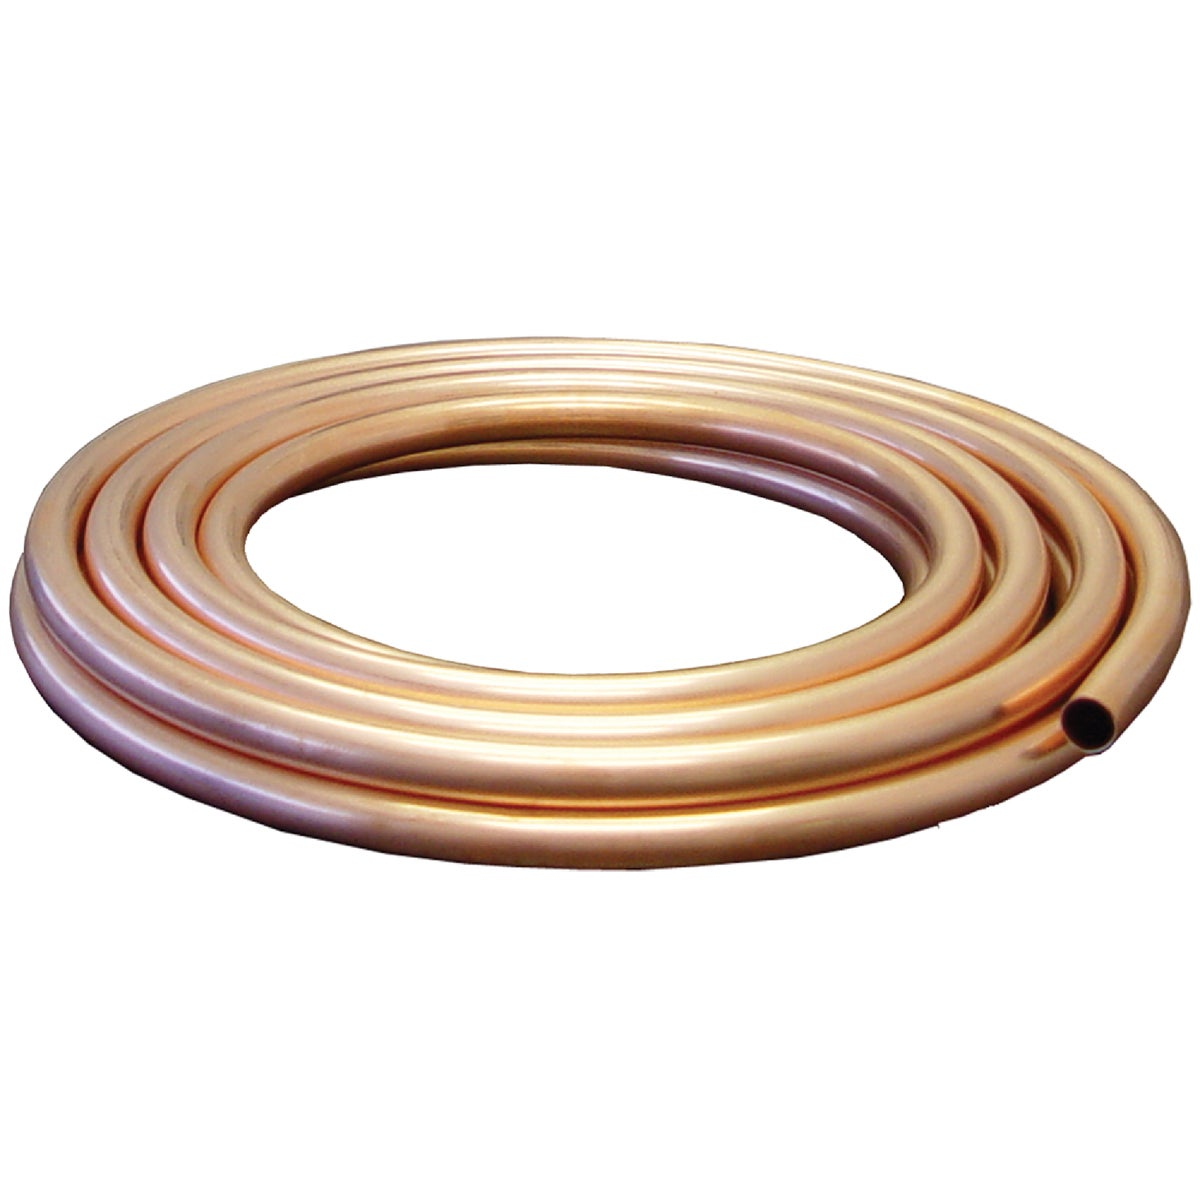 "3/8""ODX10'UG COPPER COIL - UT06010 by Mueller B K"